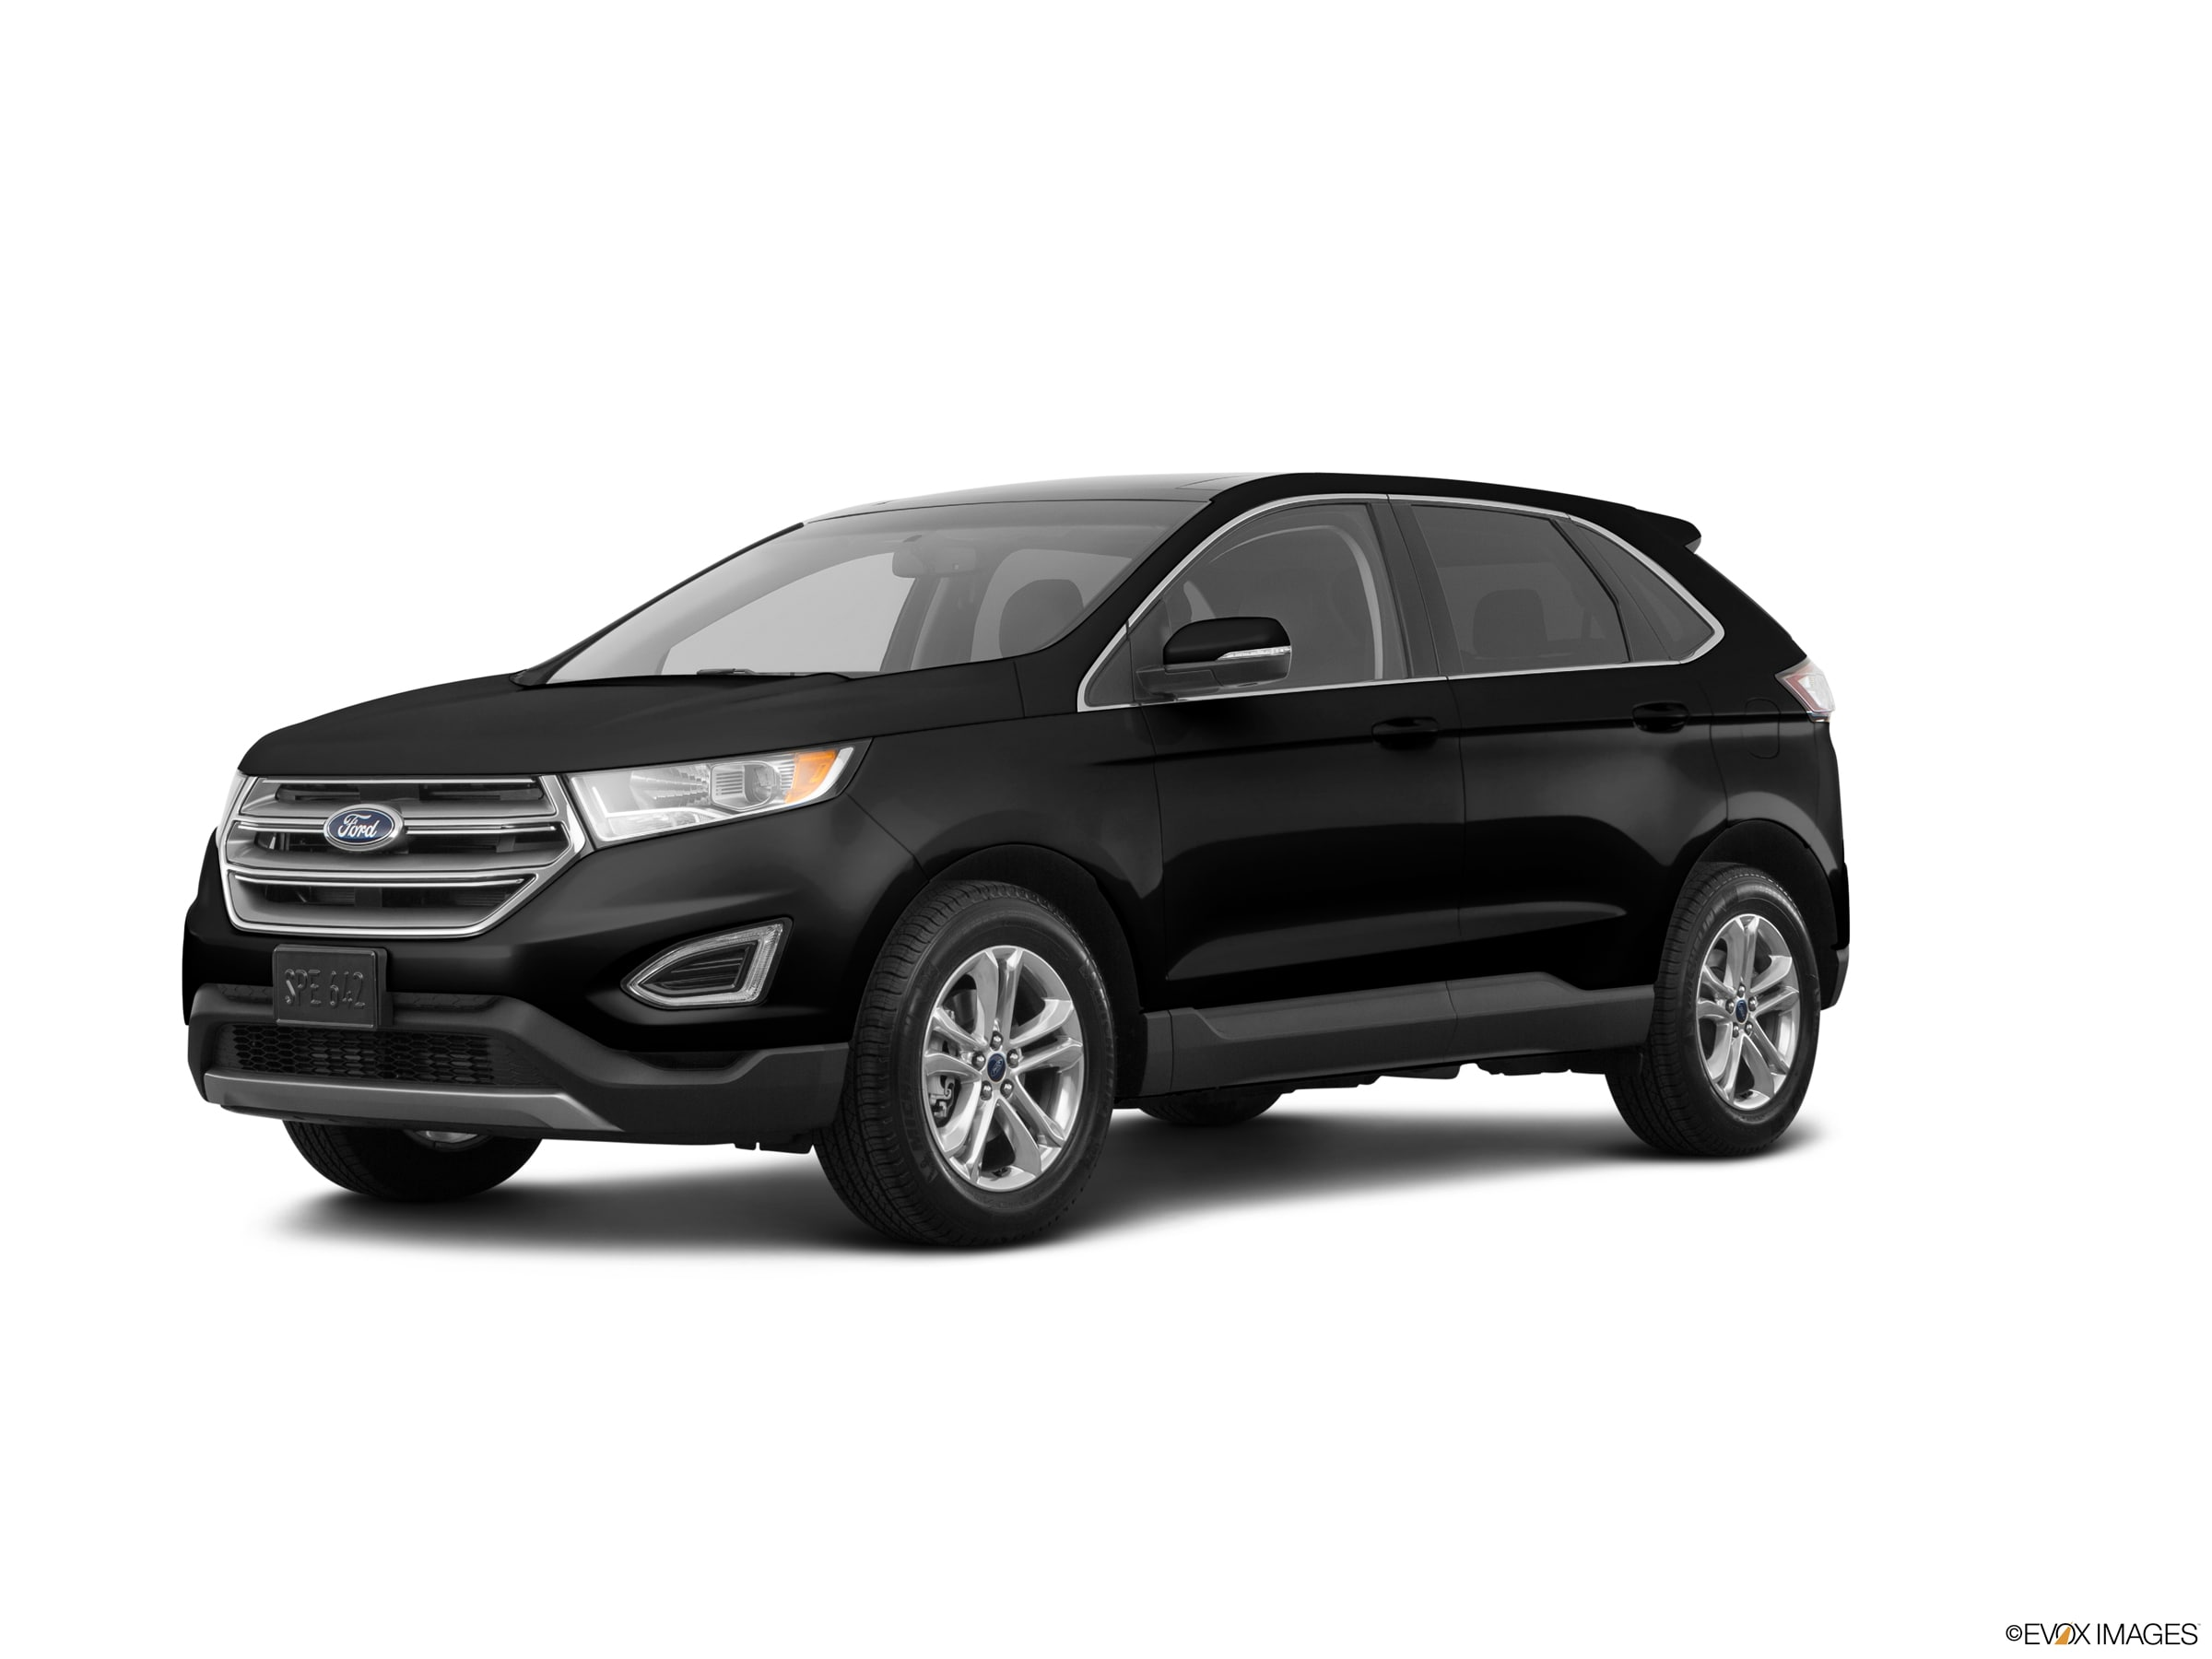 used cars and trucks for sale in aurora mo used cars and trucks for sale in aurora mo